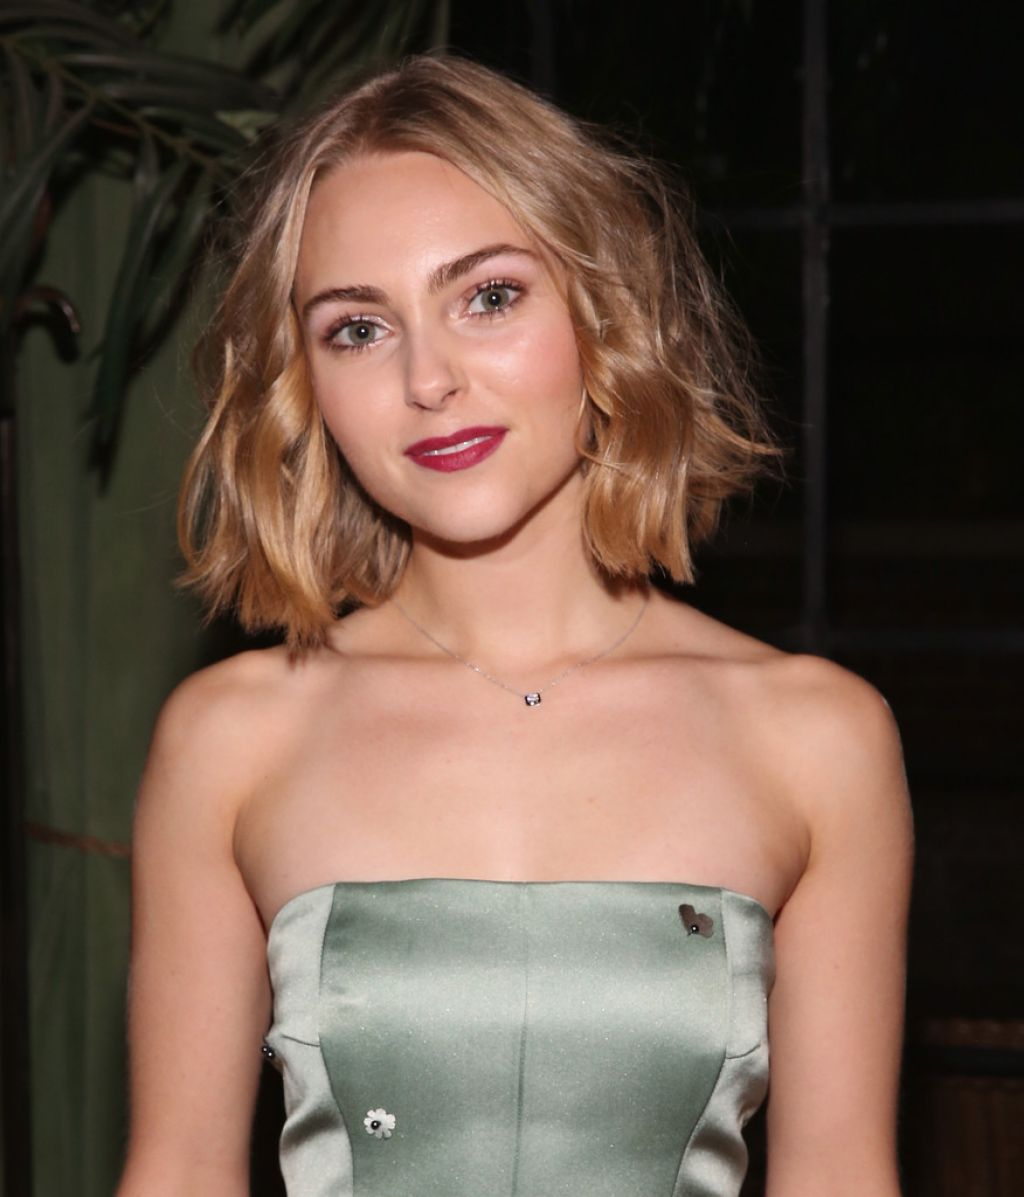 Annasophia Robb Kate Ermilio Fall 2016 Fashion Show In